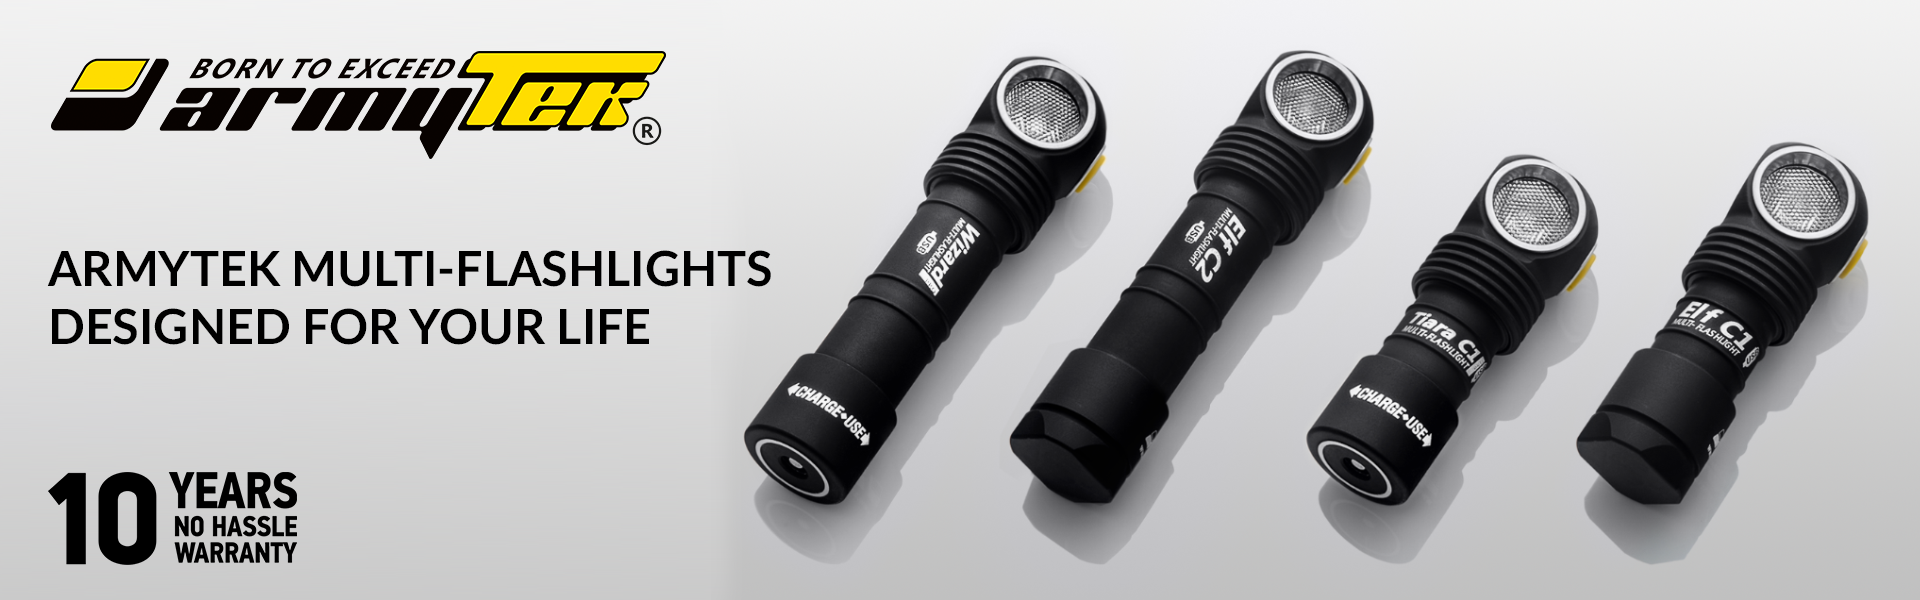 Armytek Designed for your Life